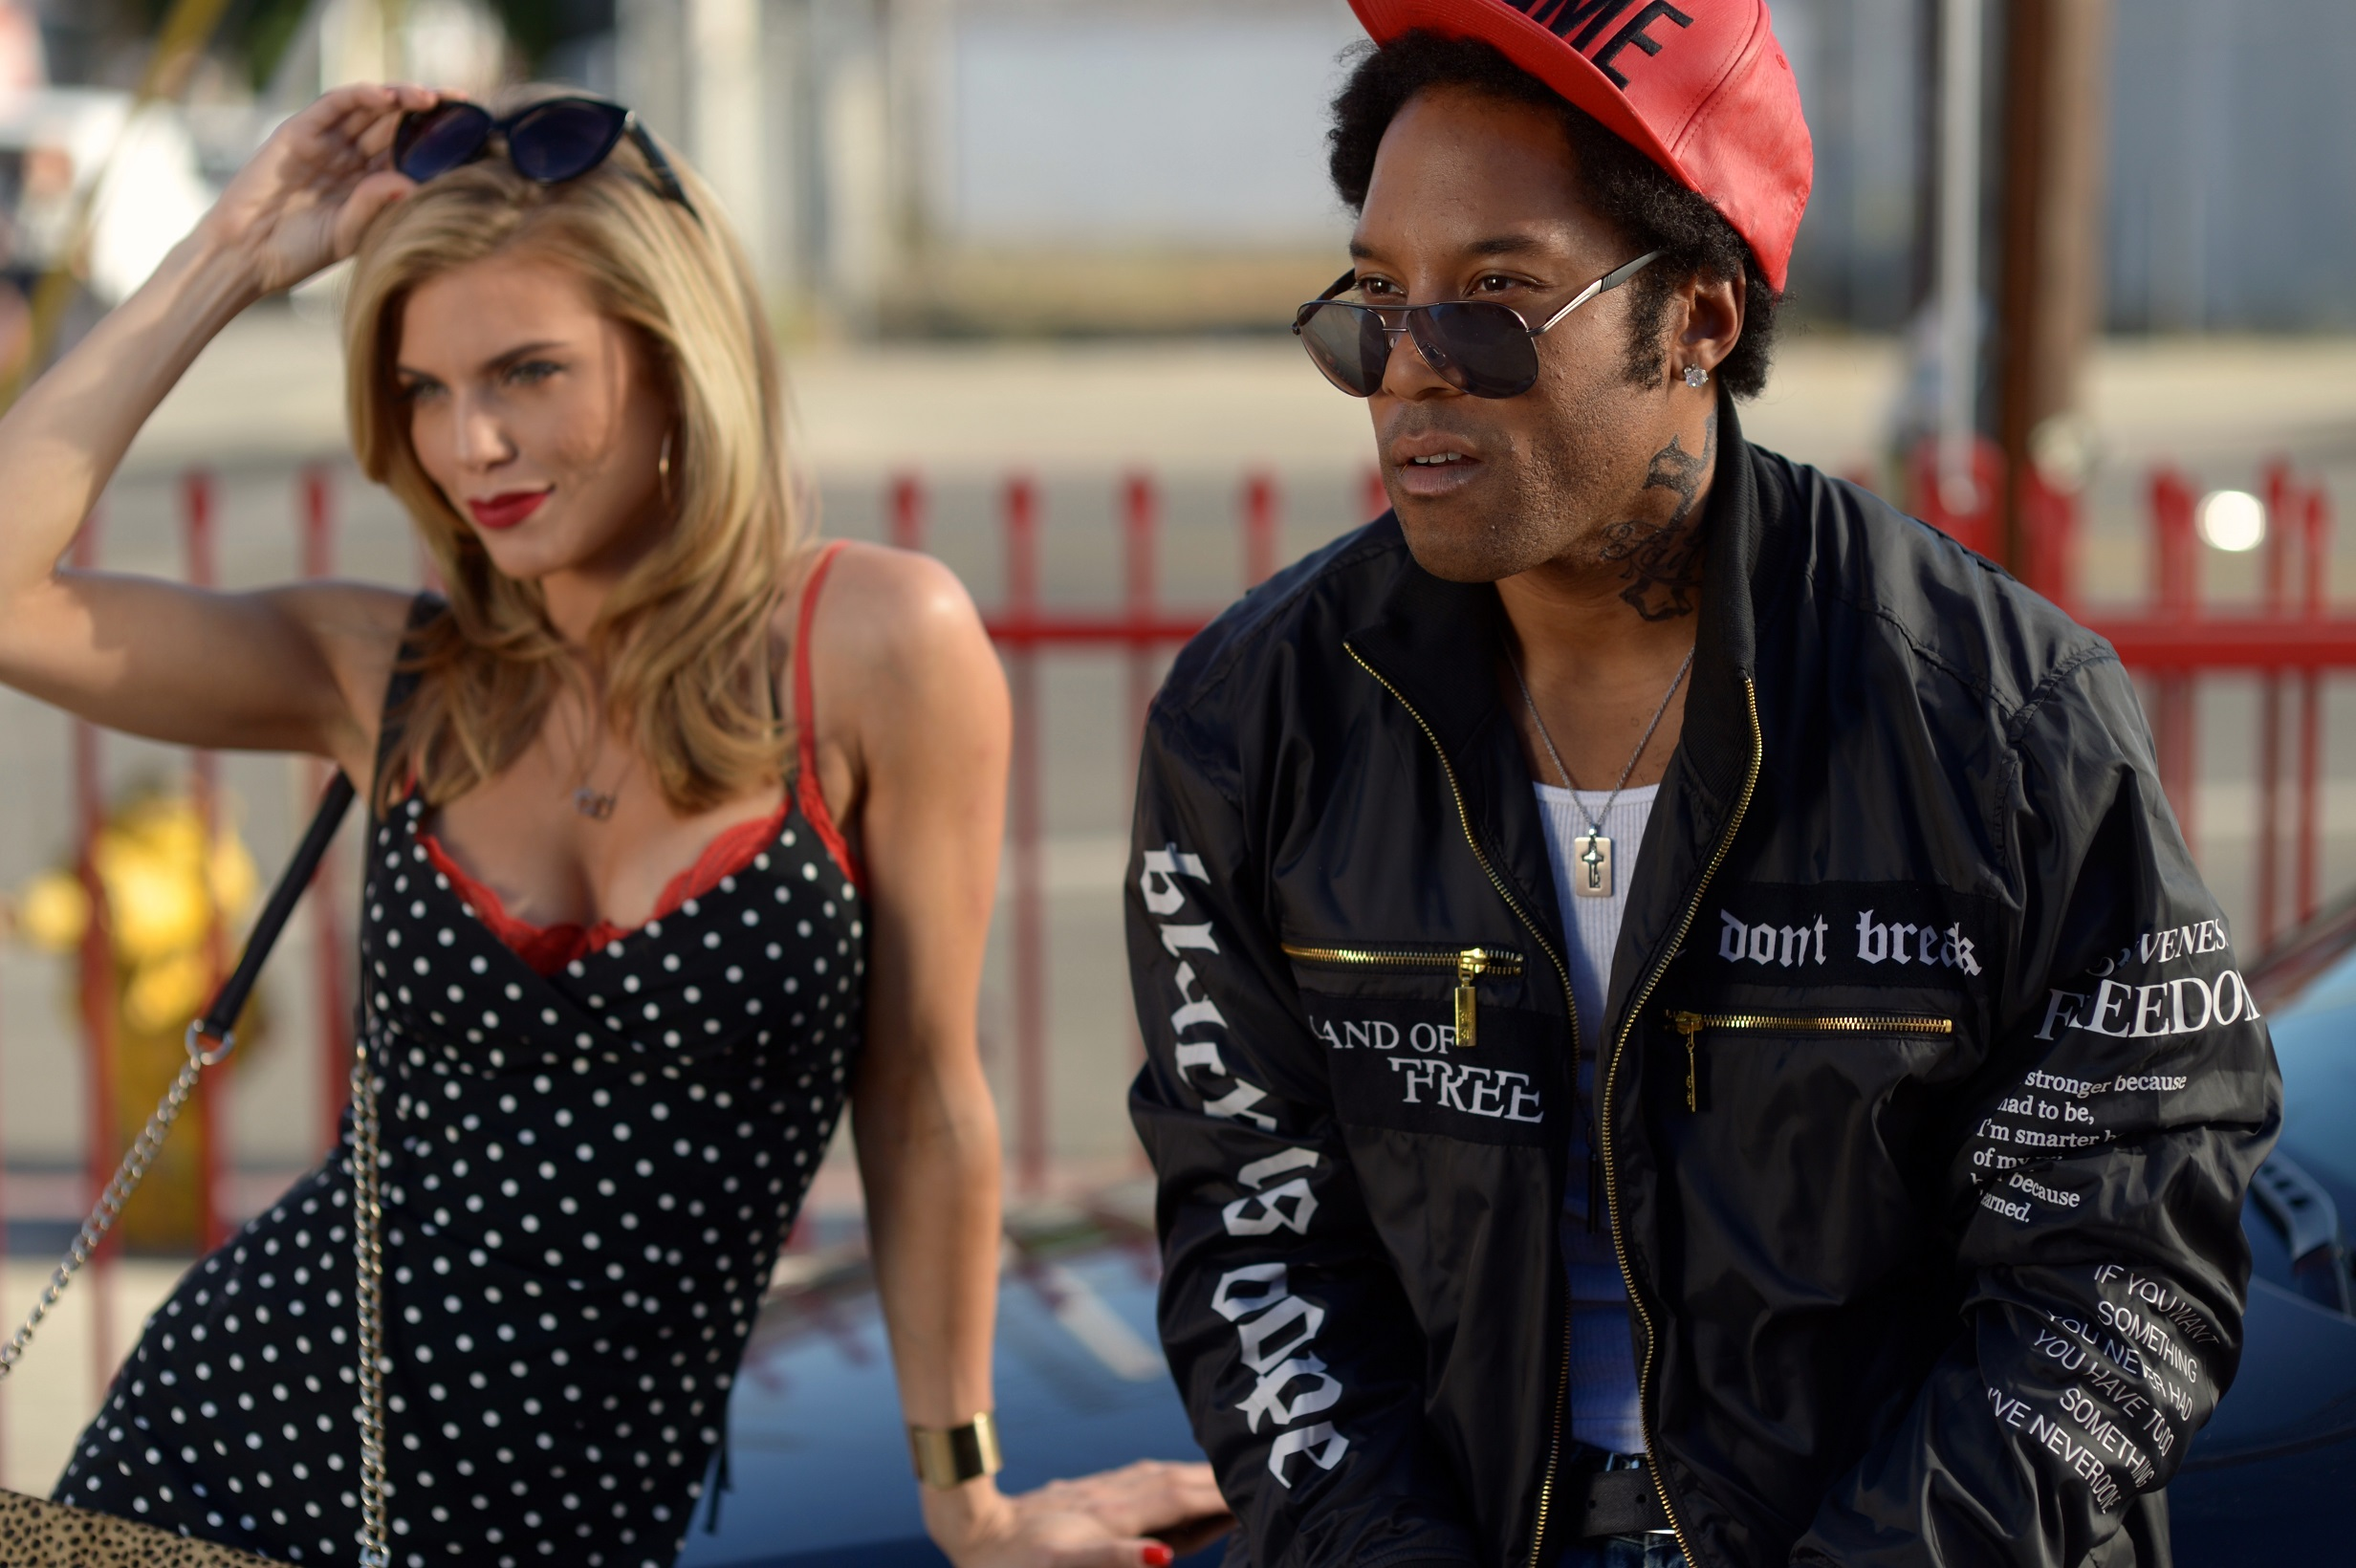 """AnnaLynne McCord as """"Divinity"""" and Johnathan Fernandez as """"Daddy"""" recruit at a milkshake stand"""